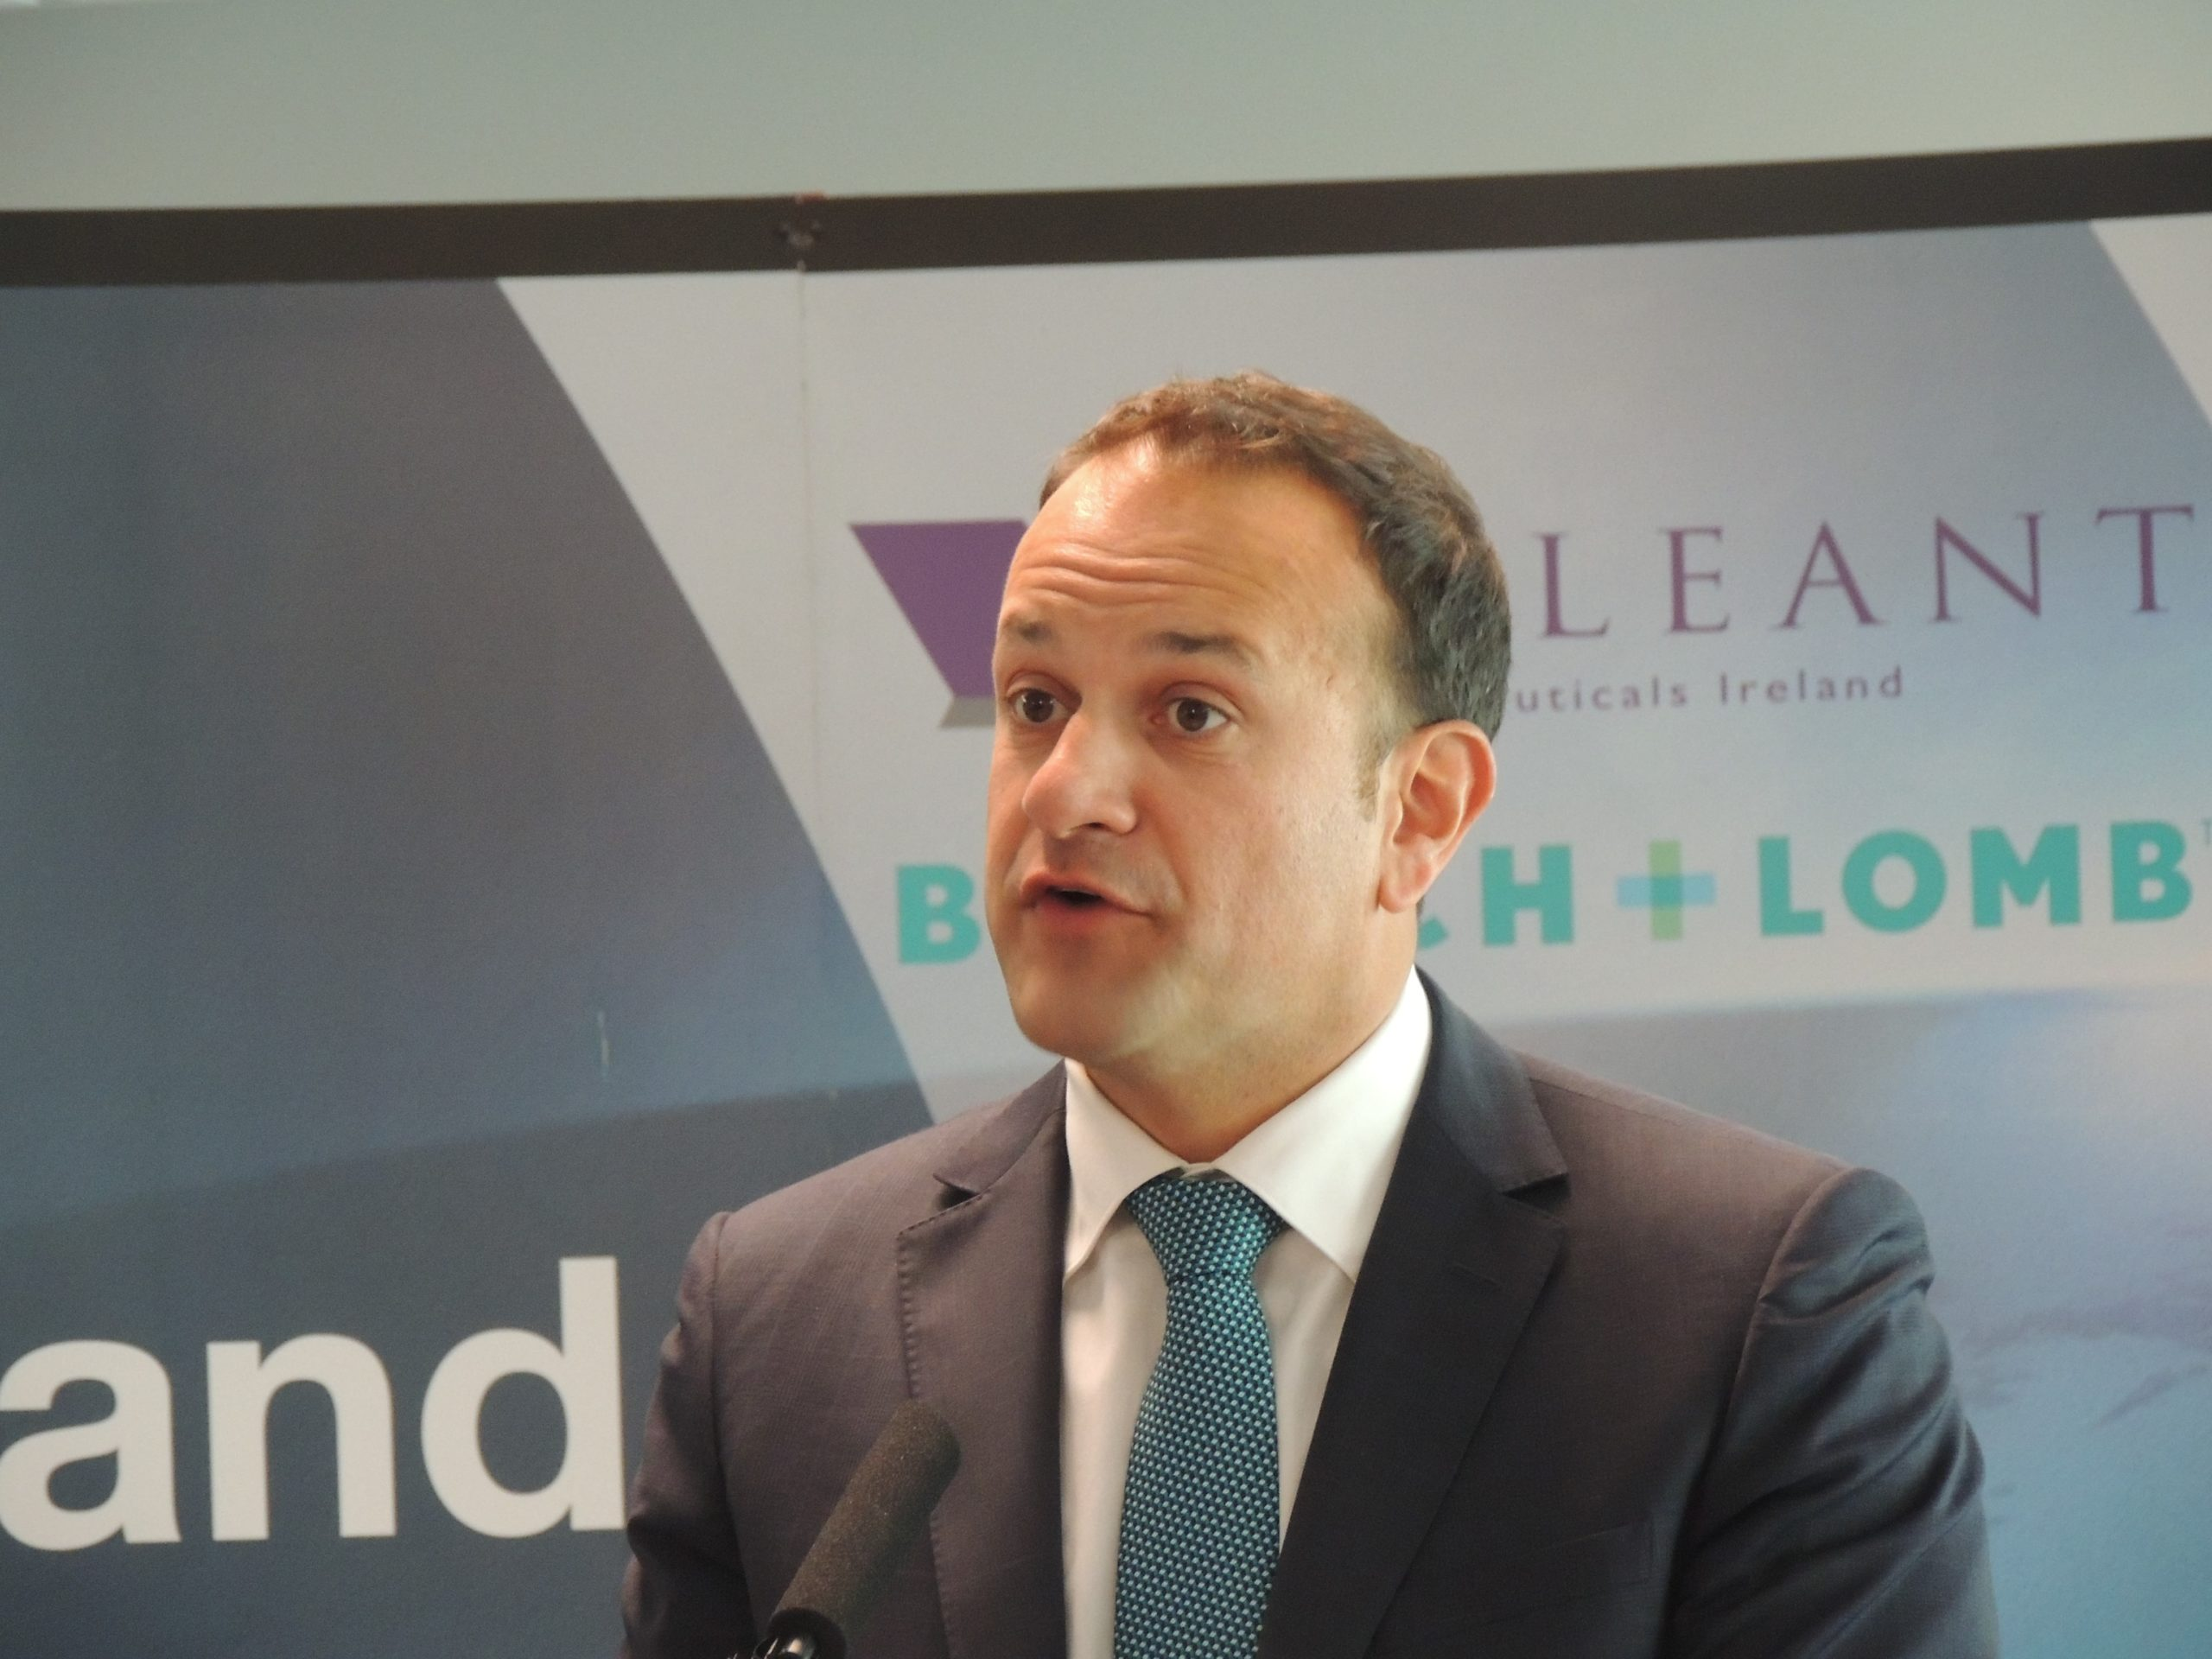 Taoiseach says he is determined Waterford will grow.